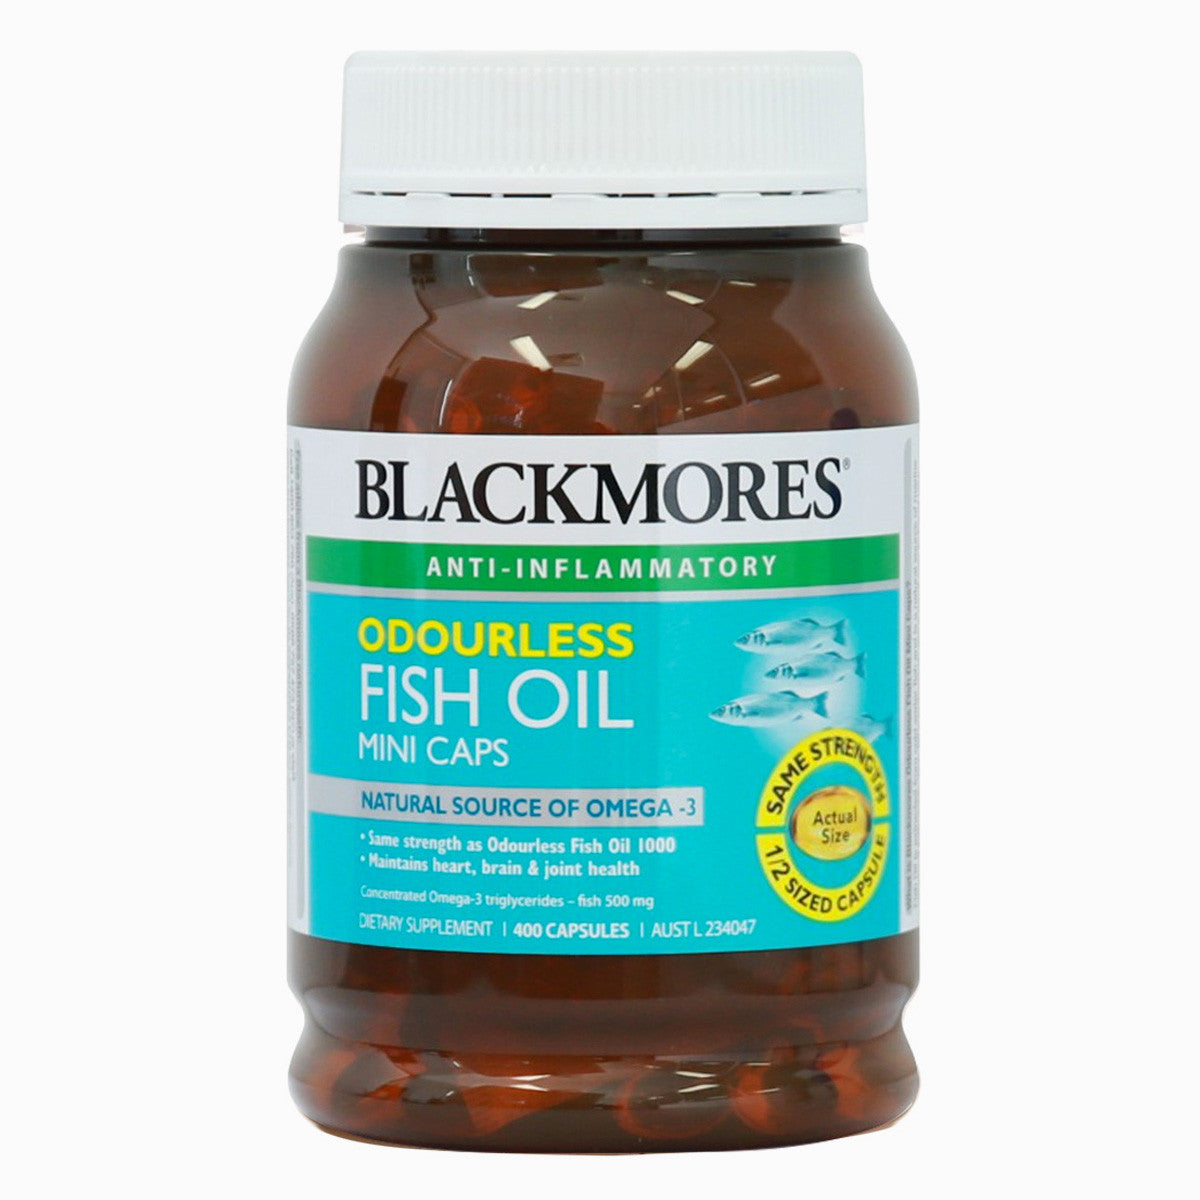 Blackmores Odourless Fish Oil 1000mg Mini 400 Capsules